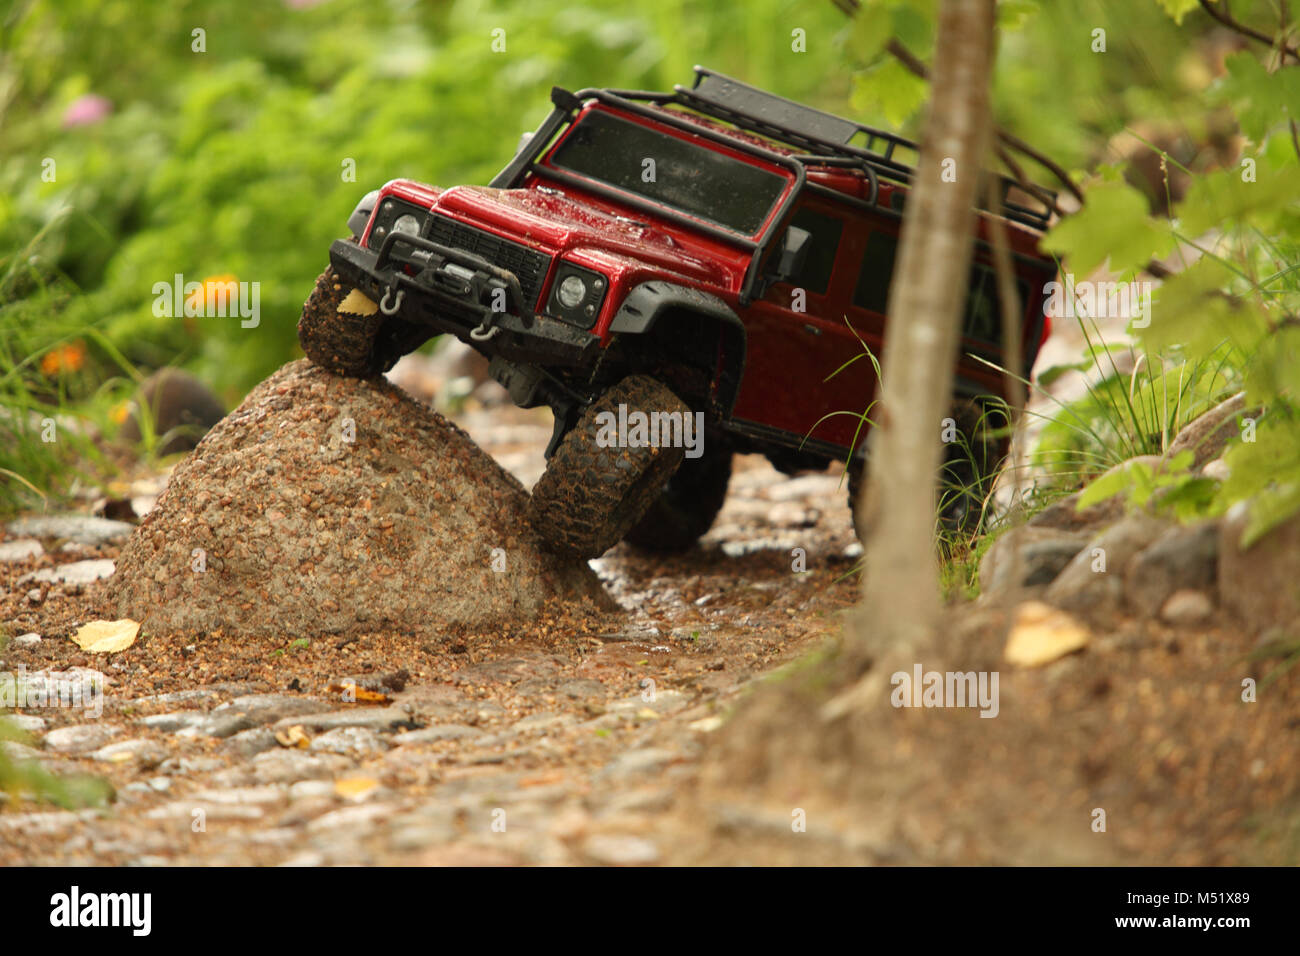 Off-road vehicle go around obstacles - Stock Image